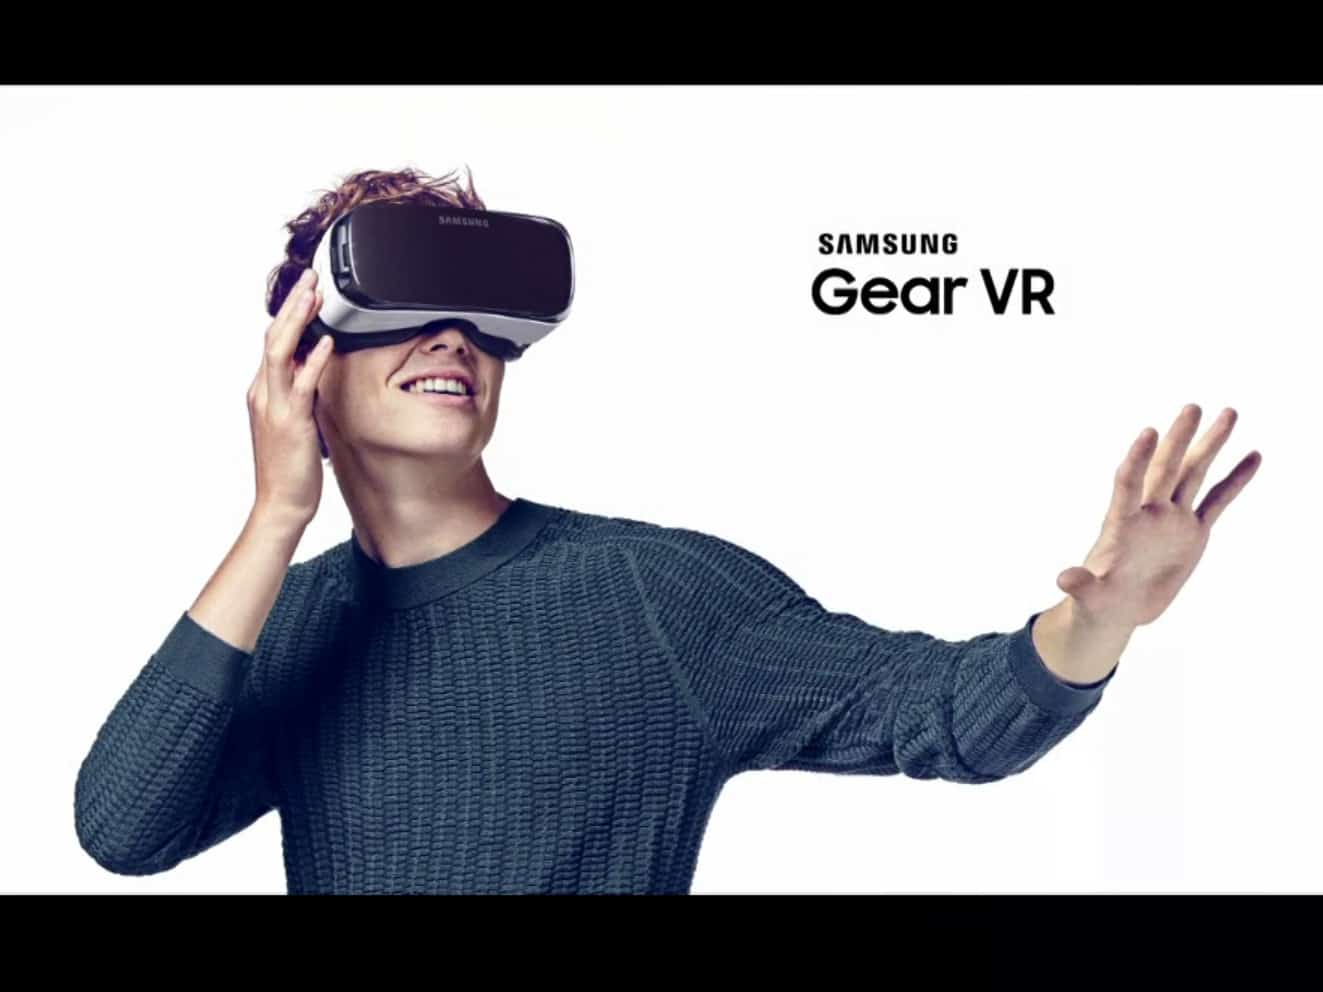 samsung-gear-vr Samsung Galaxy S8 Launch – A Game Changer for Digital Marketing?